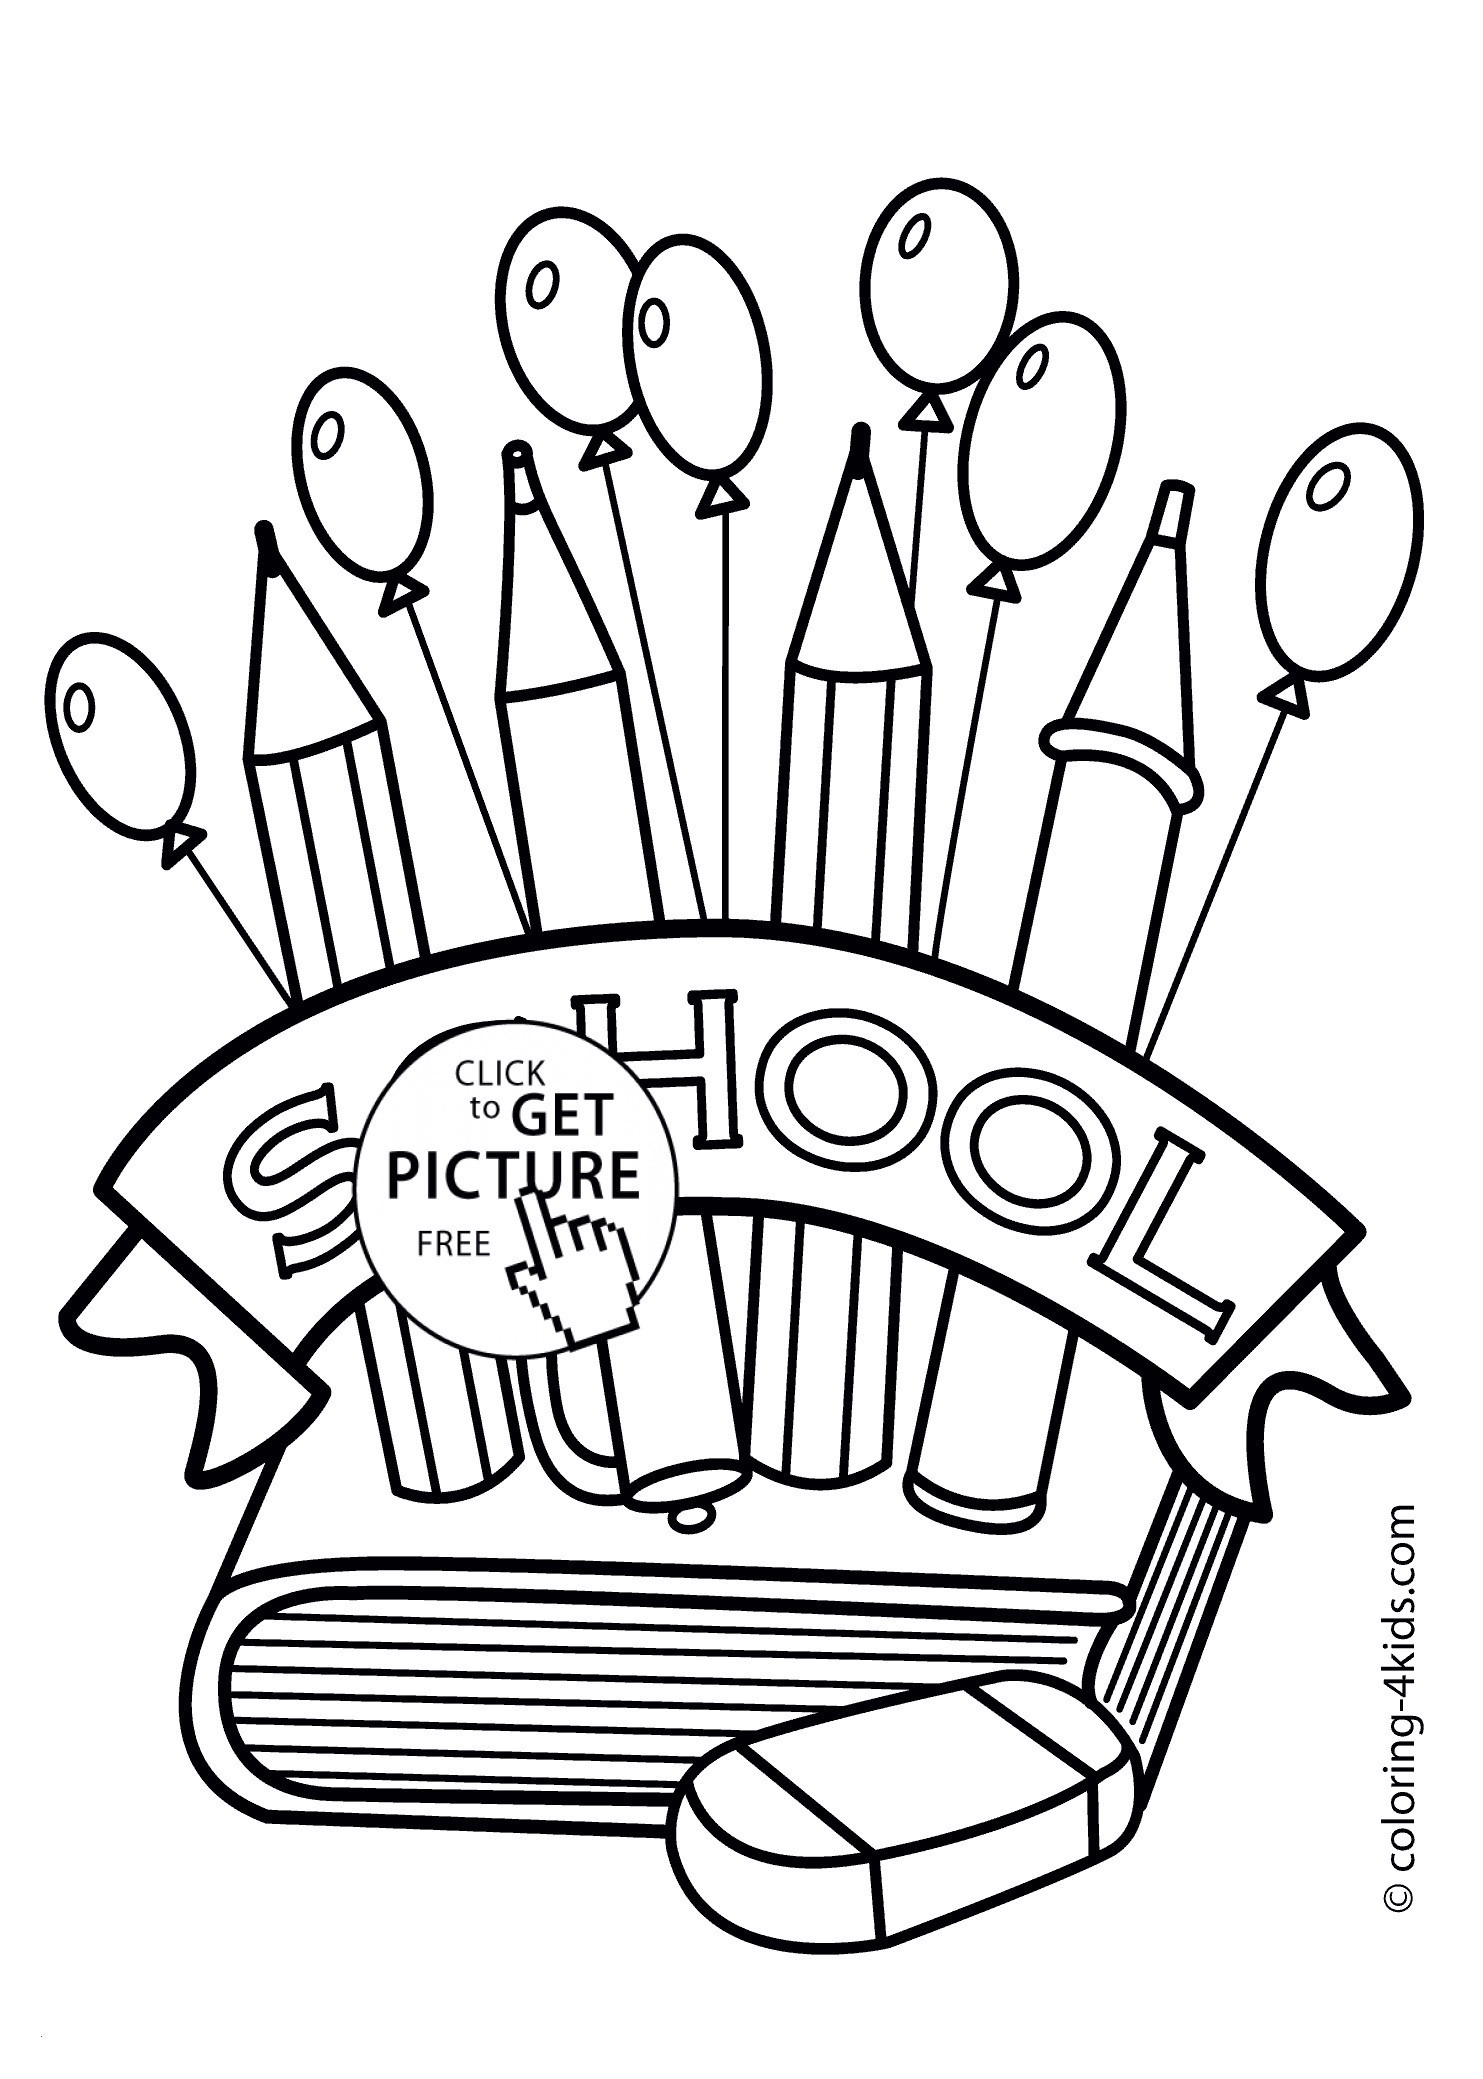 First Day Of School Coloring Pages for Kindergarten  Printable 11a - Save it to your computer